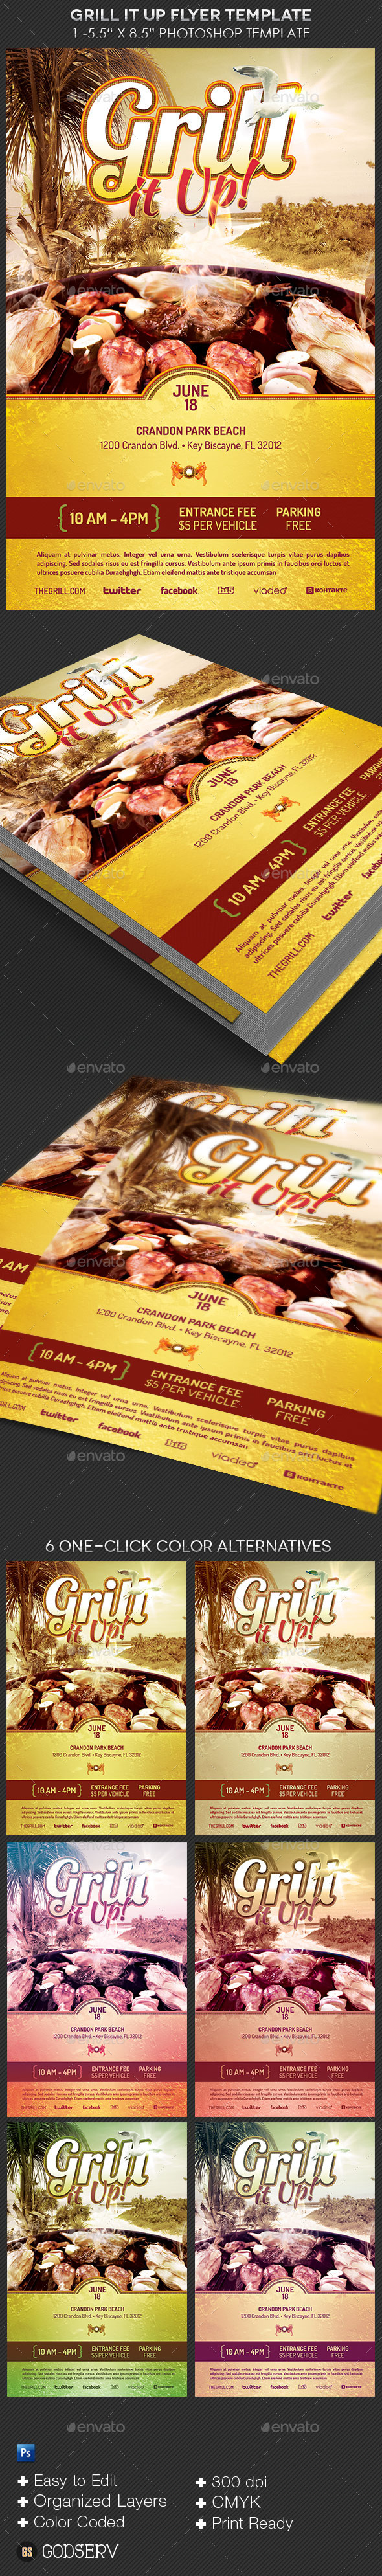 Grill It Up Flyer Template - Events Flyers